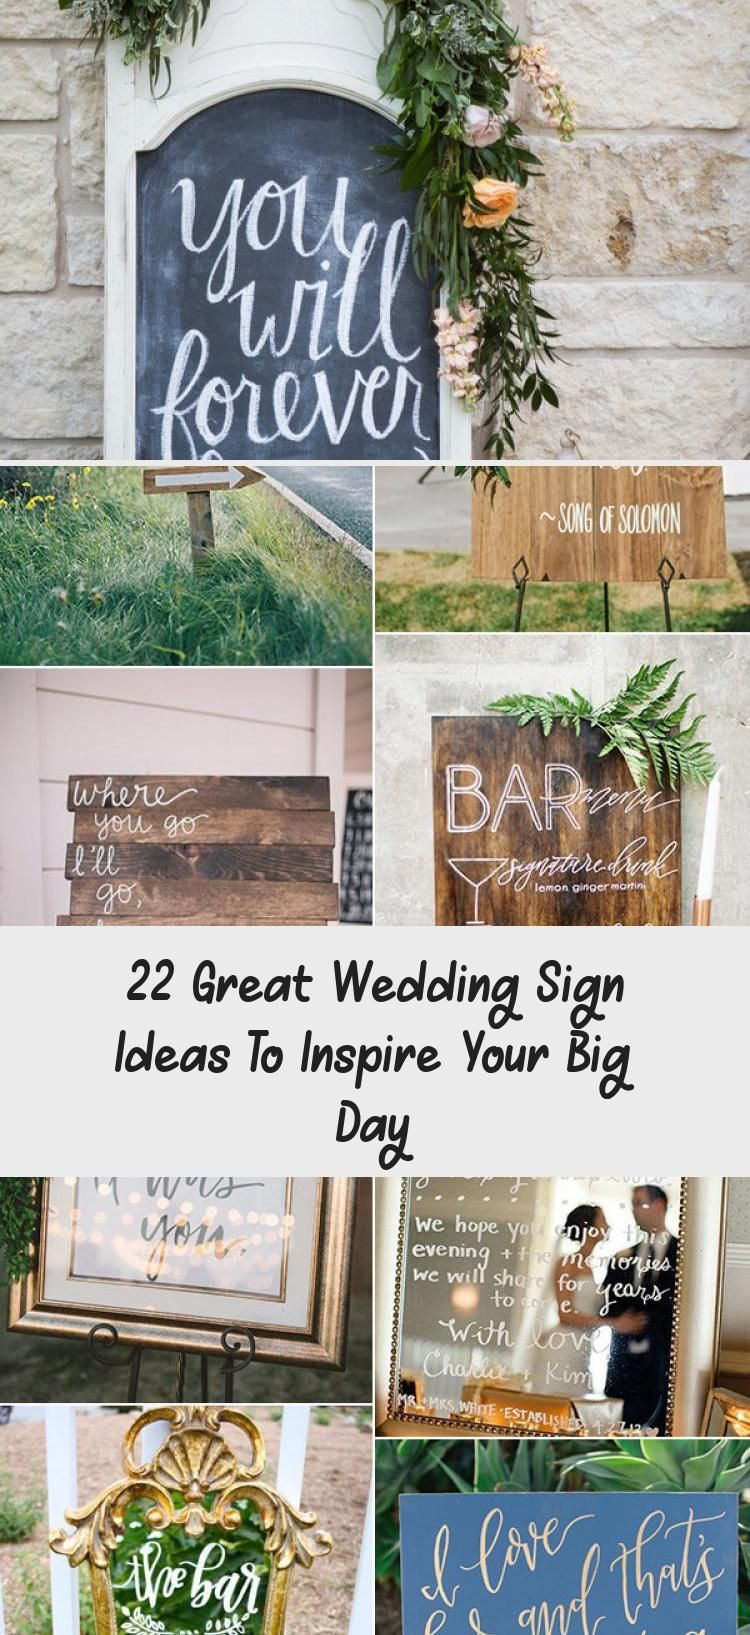 22 Great Wedding Sign Ideas To Inspire Your Big Day Wedding In 2020 Wedding Signs Rustic Wedding Cards Rustic Wedding Games